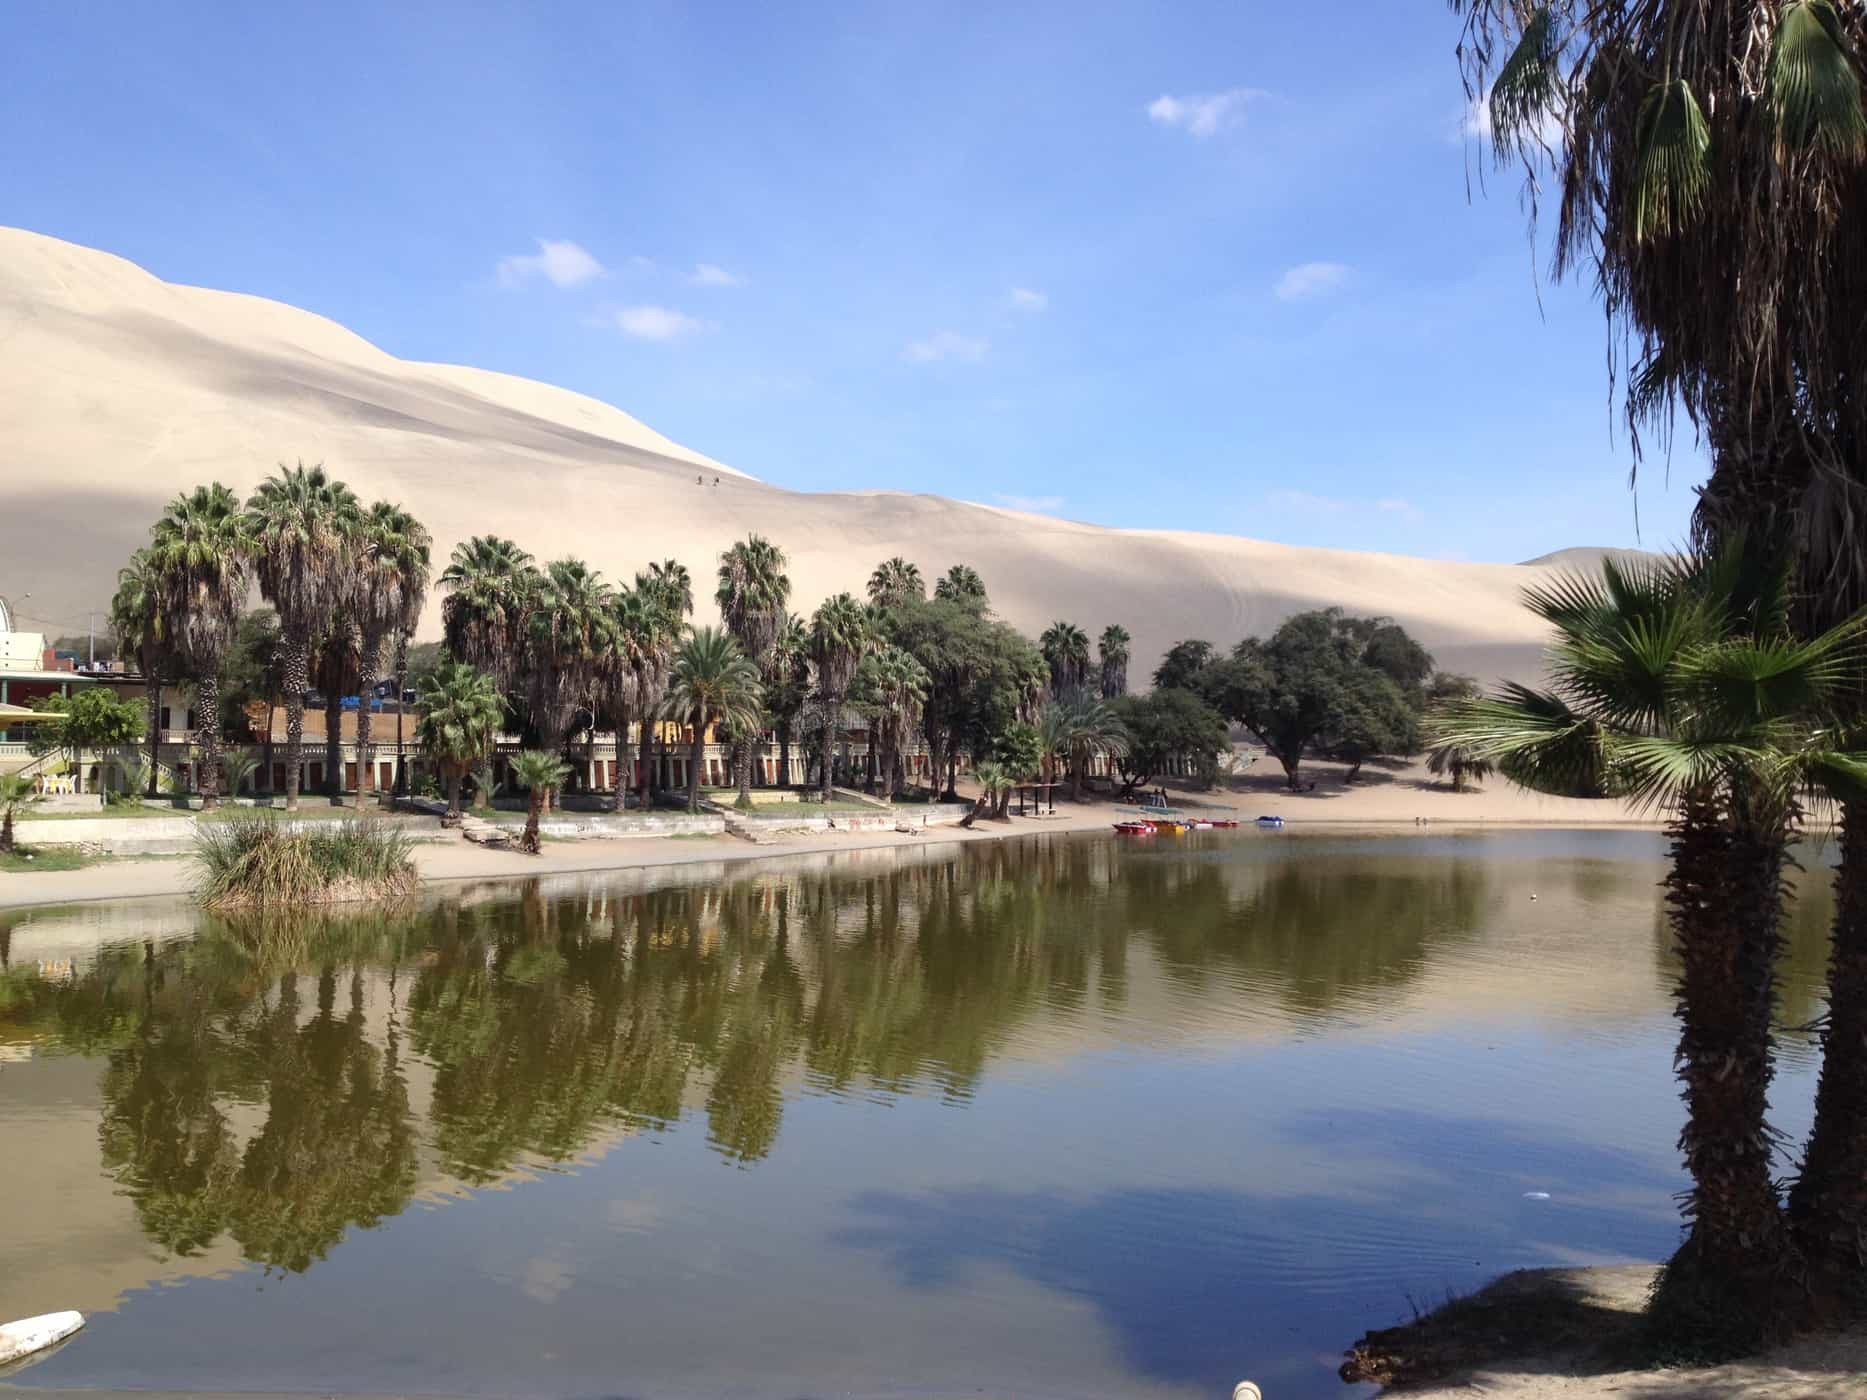 An oasis in the desert. Welcome to the unusual backpacker hub of Huacachina, Peru.